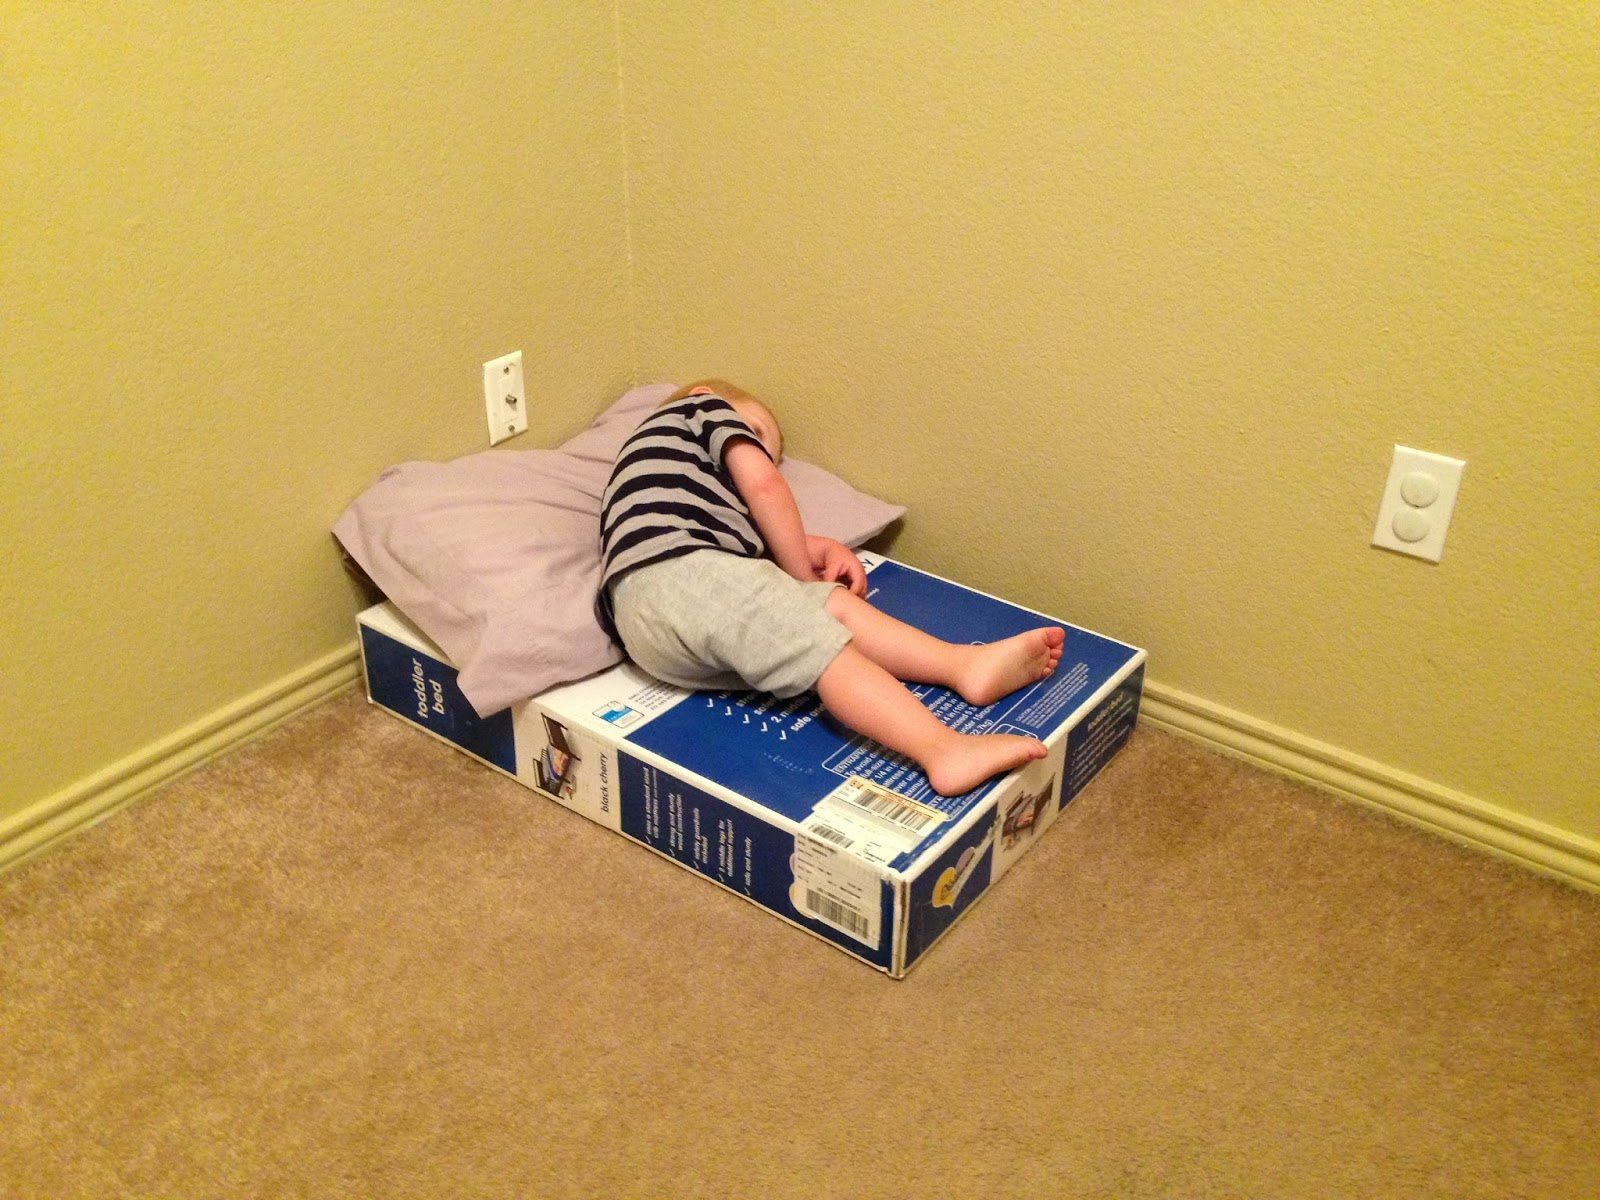 Toddler Beds The Worst Things On Earth Life As Of Late